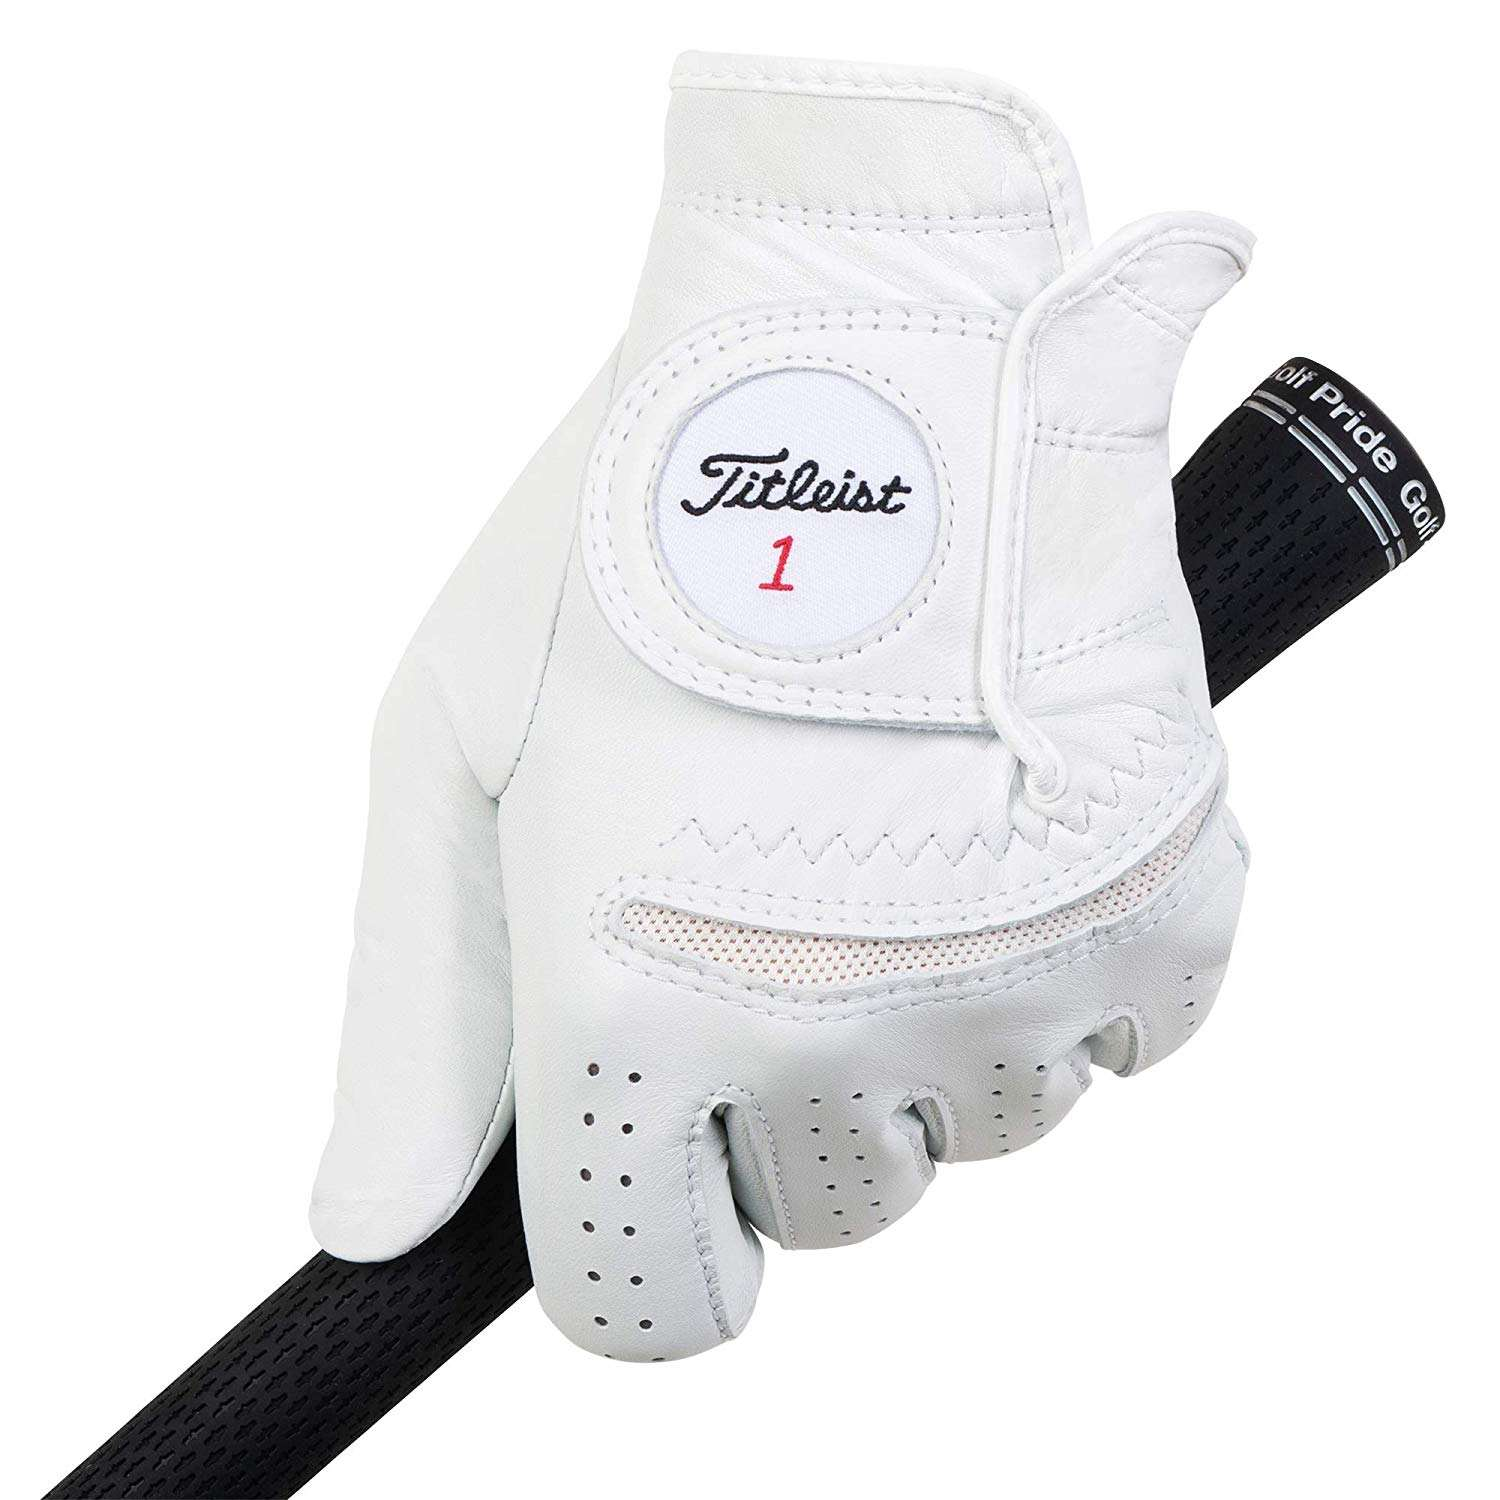 golf glove in cabretta leather and synthetic leather/microfiber/custom/personalized for right and left hand